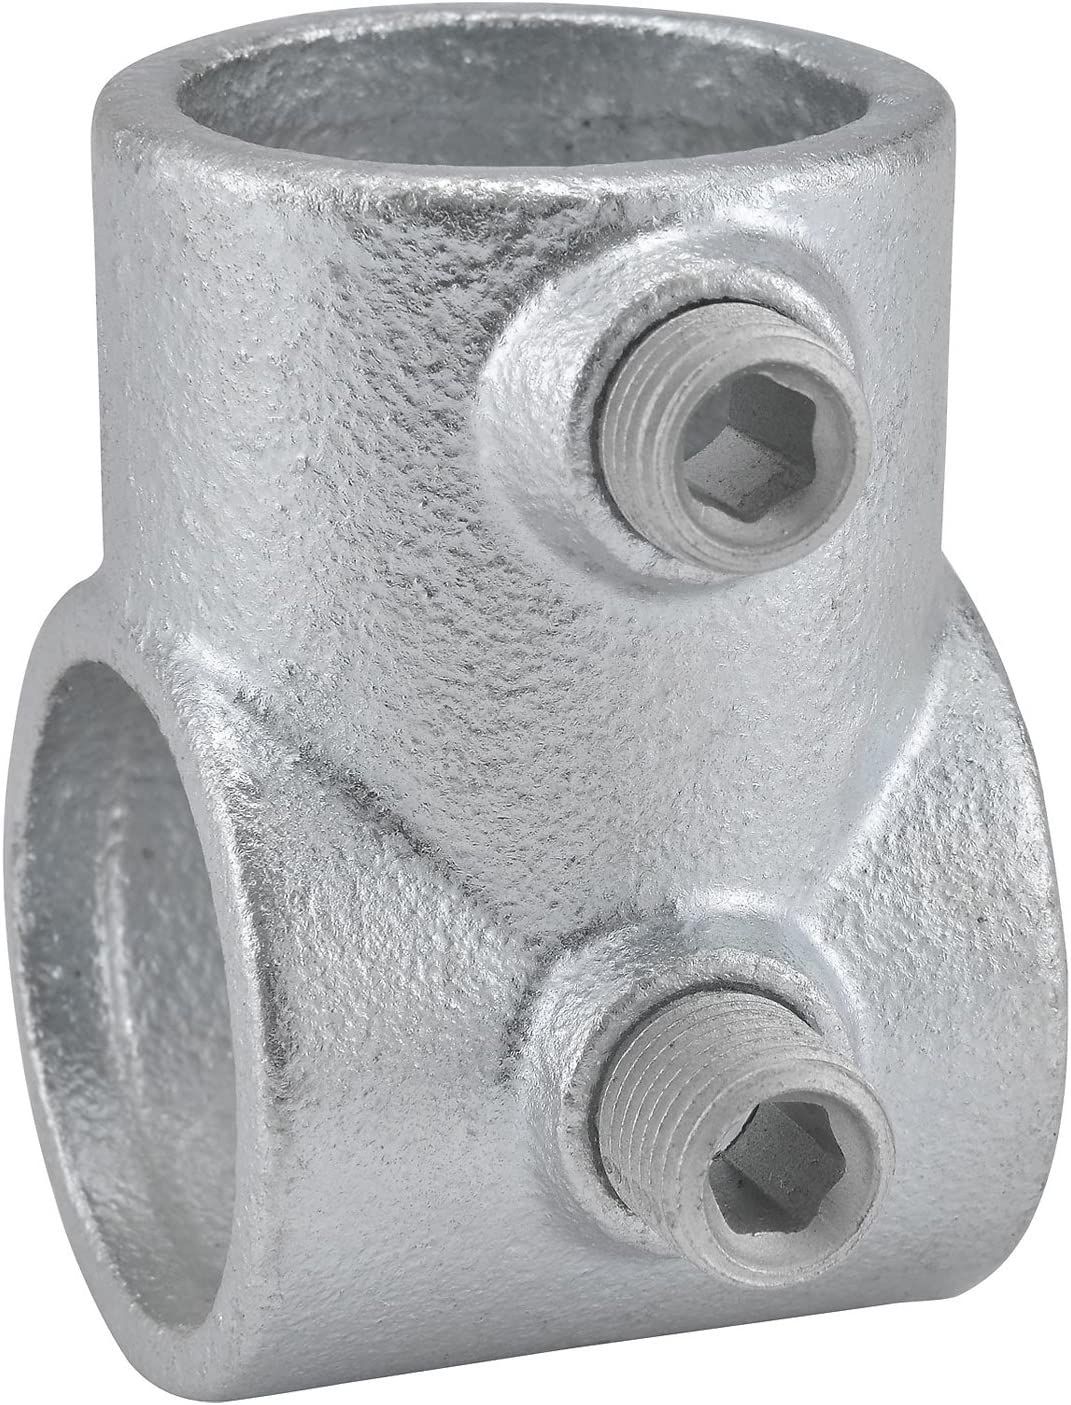 1-1//4 Inch Pipe Kee Malleable Iron Pipe Rail Fitting 7 Pack